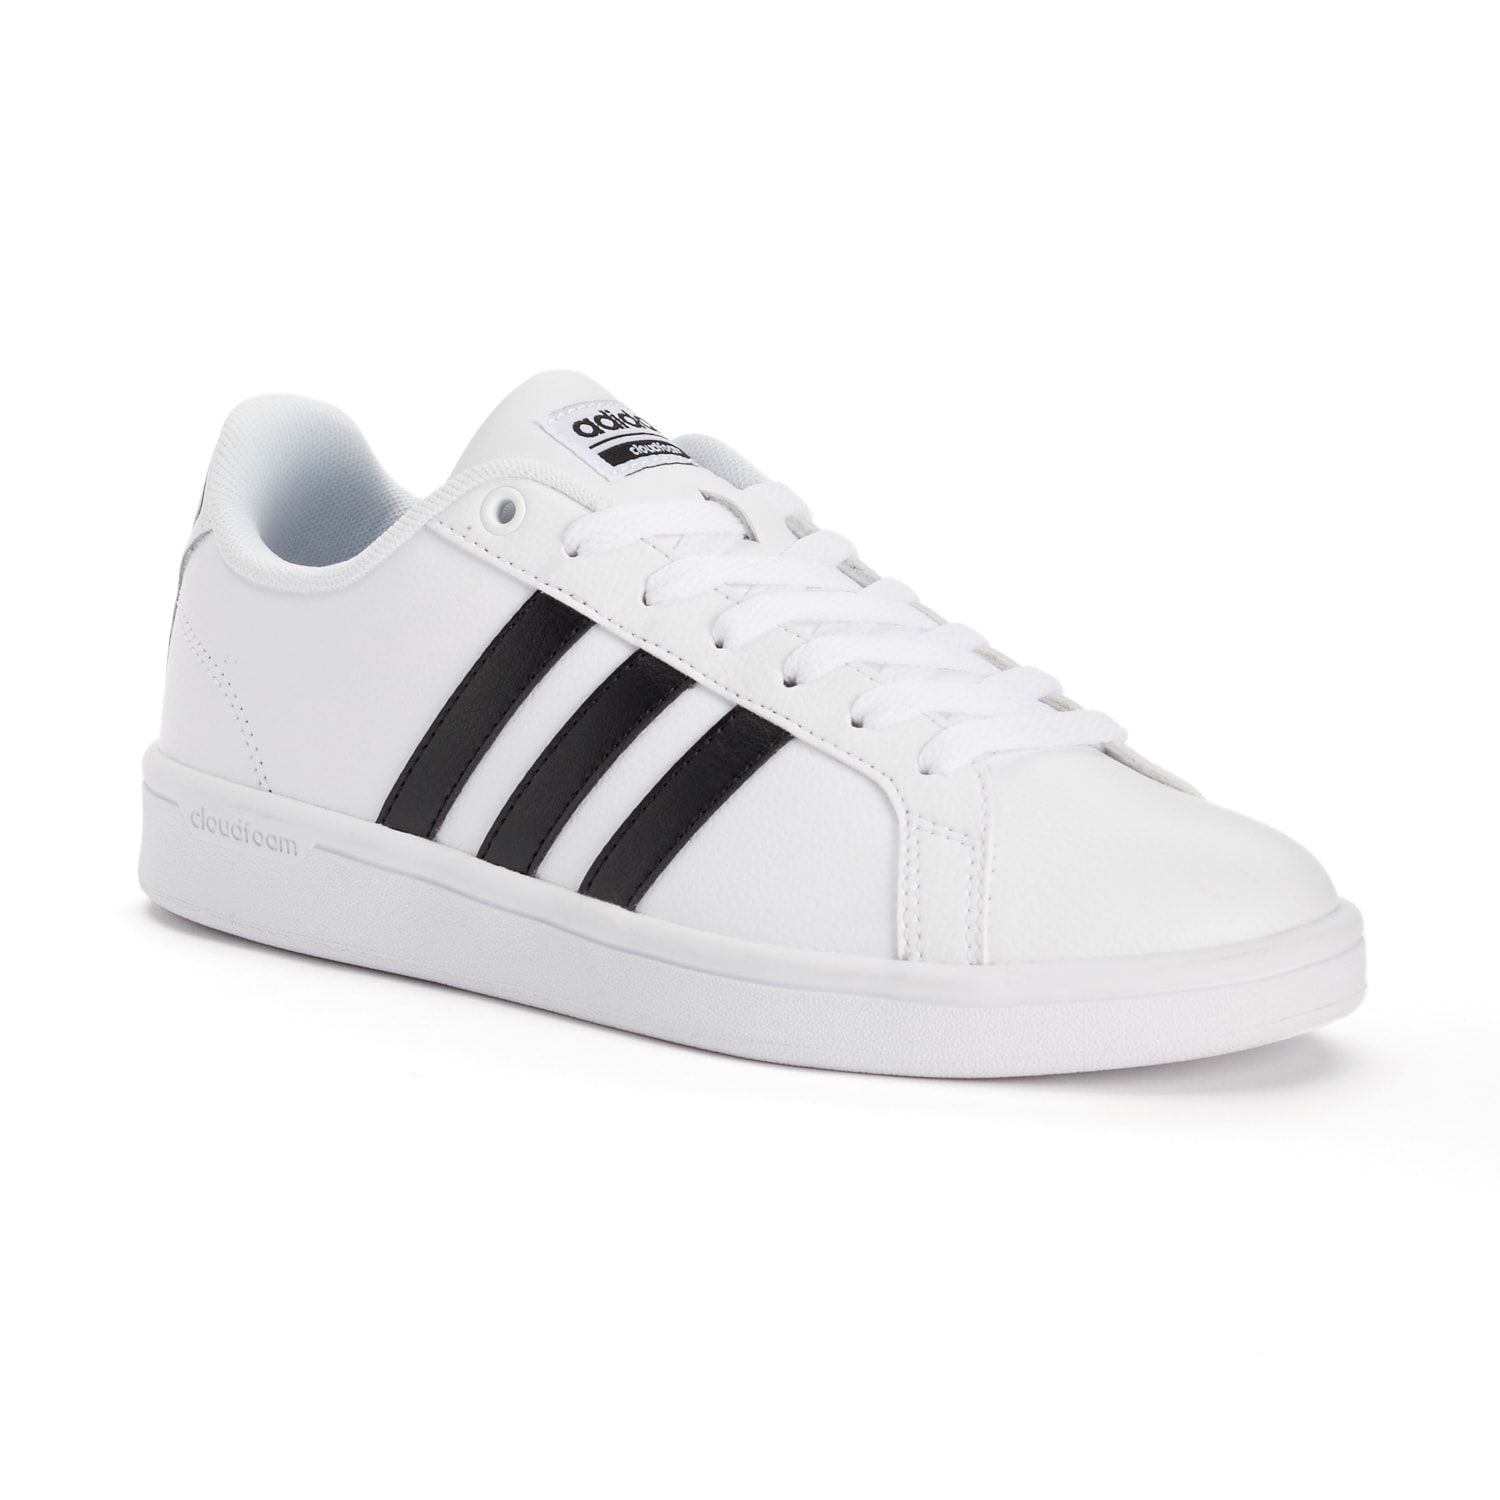 adidas NEO Cloudfoam Advantage Stripe Women's Shoes in iridescent white  (iridescent stripes not black)